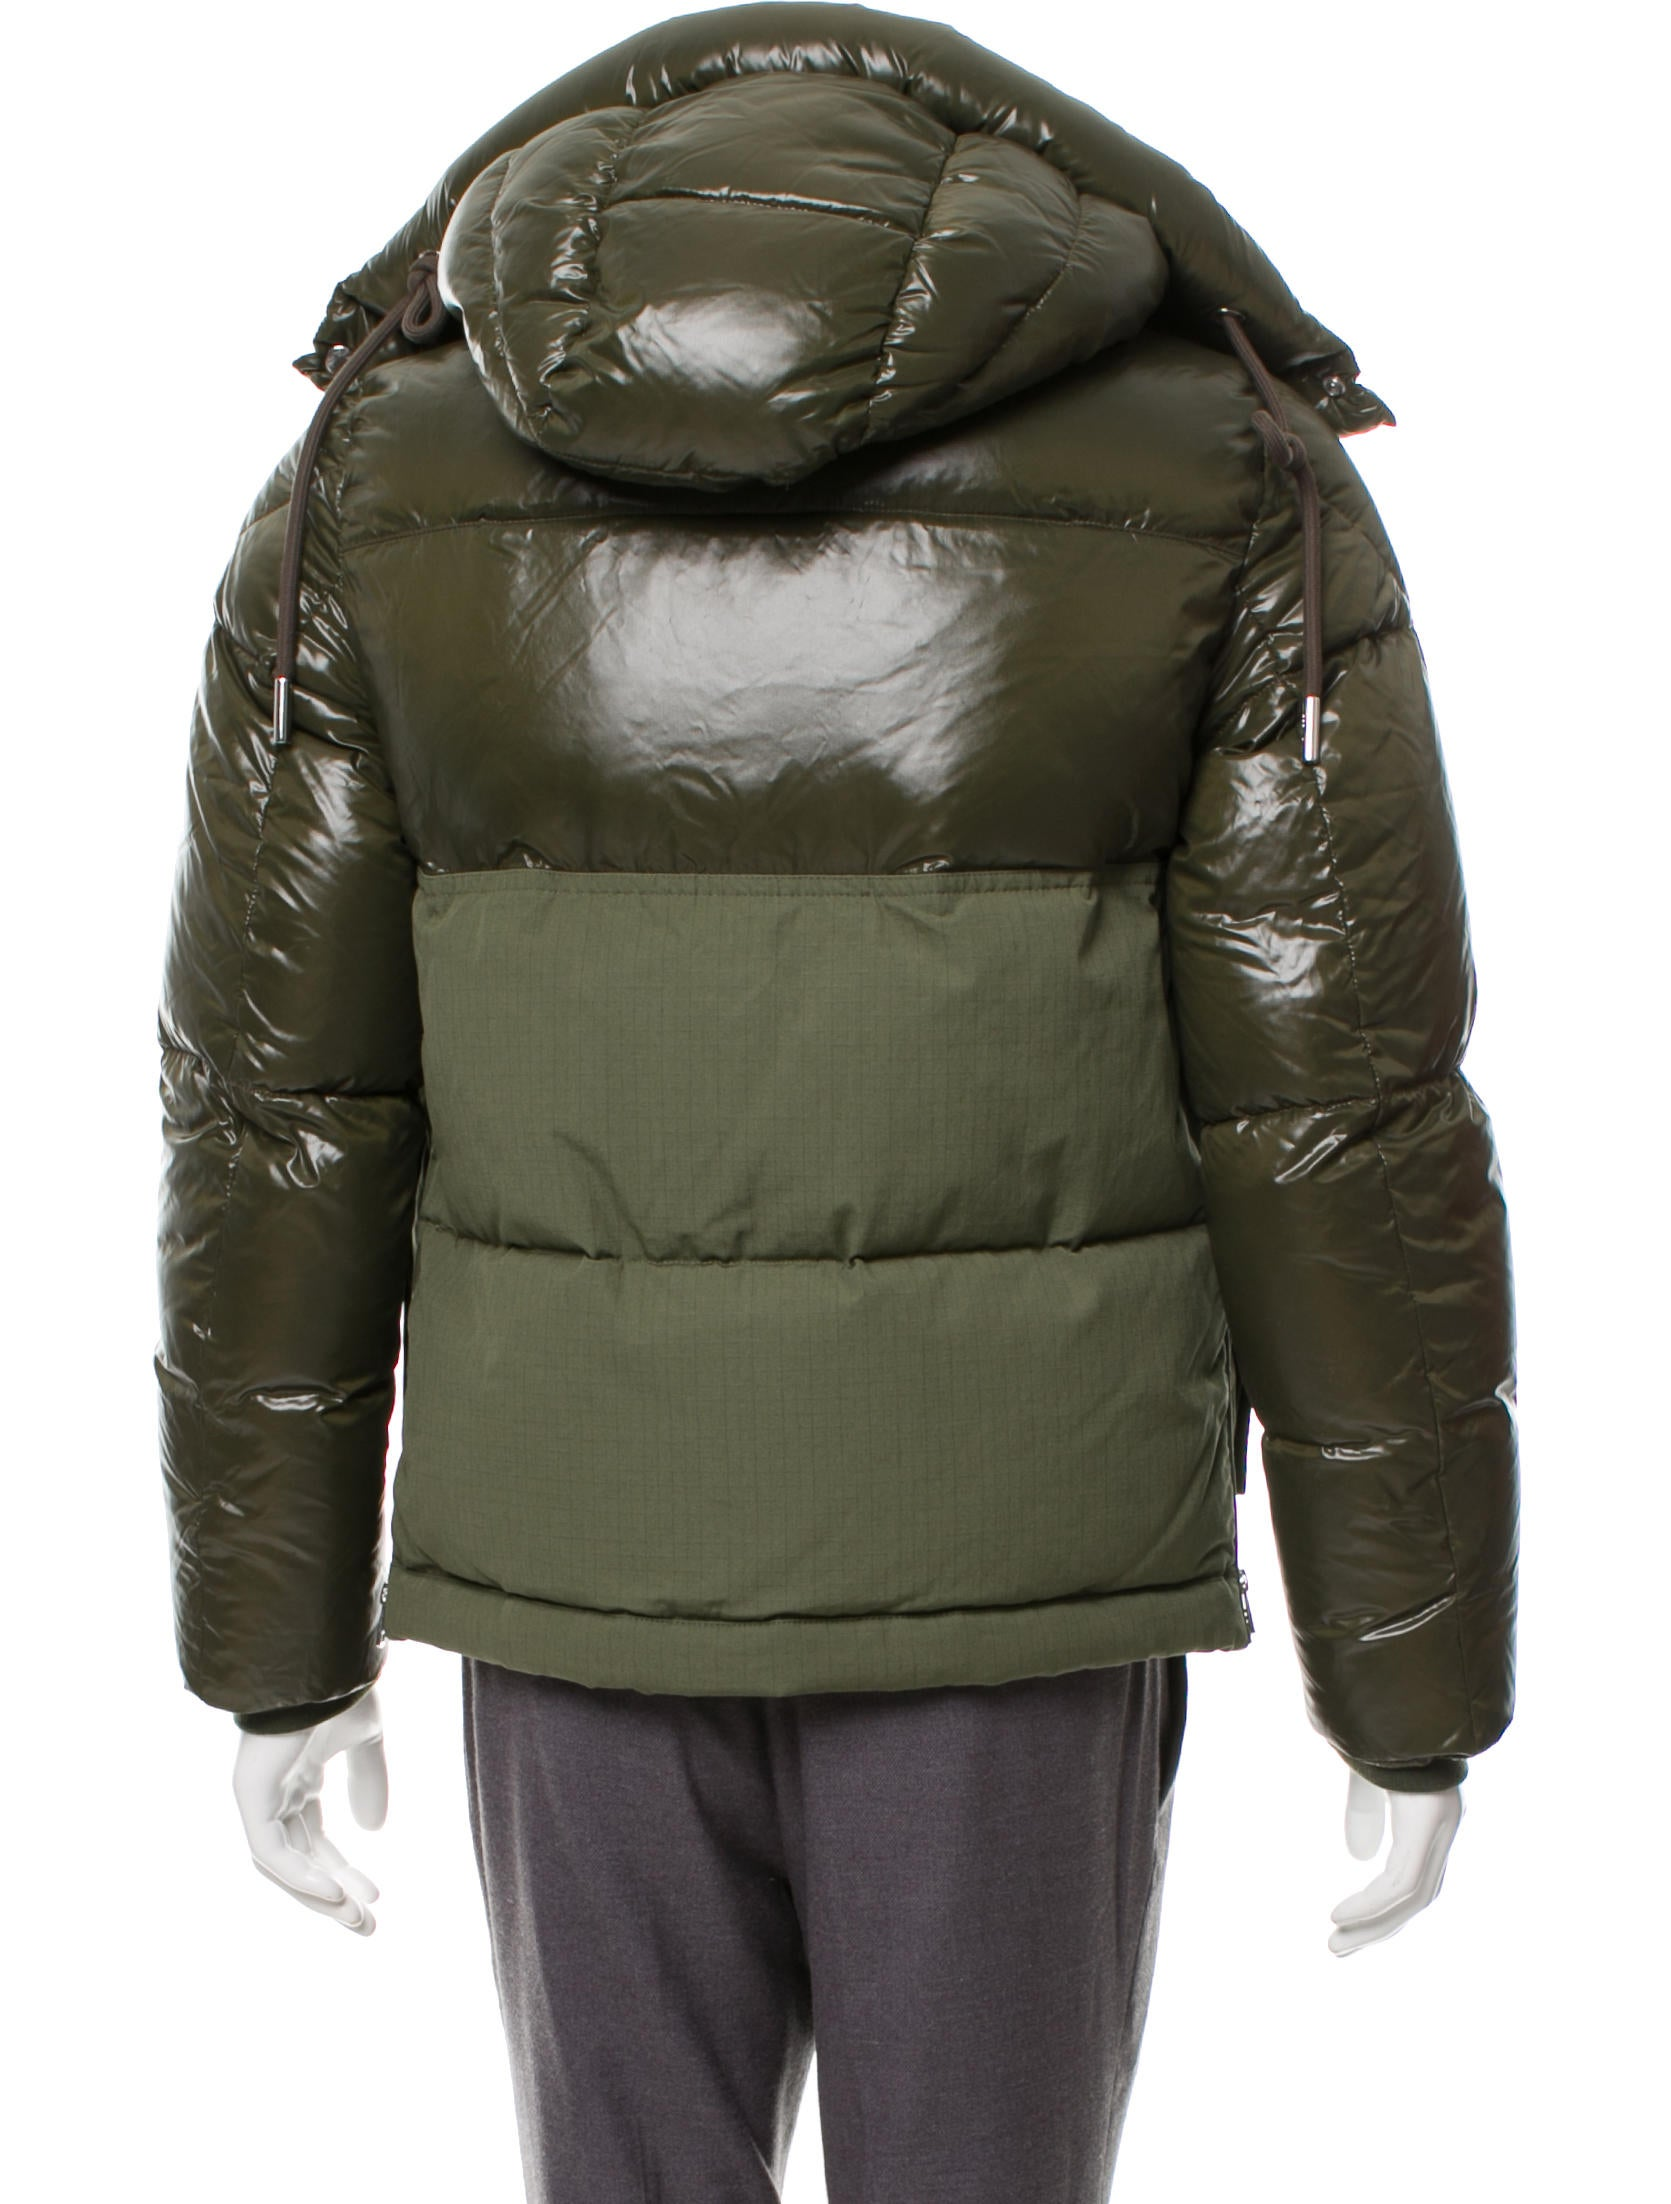 Moncler 2018 Montriond Puffer Jacket w Tags Clothing